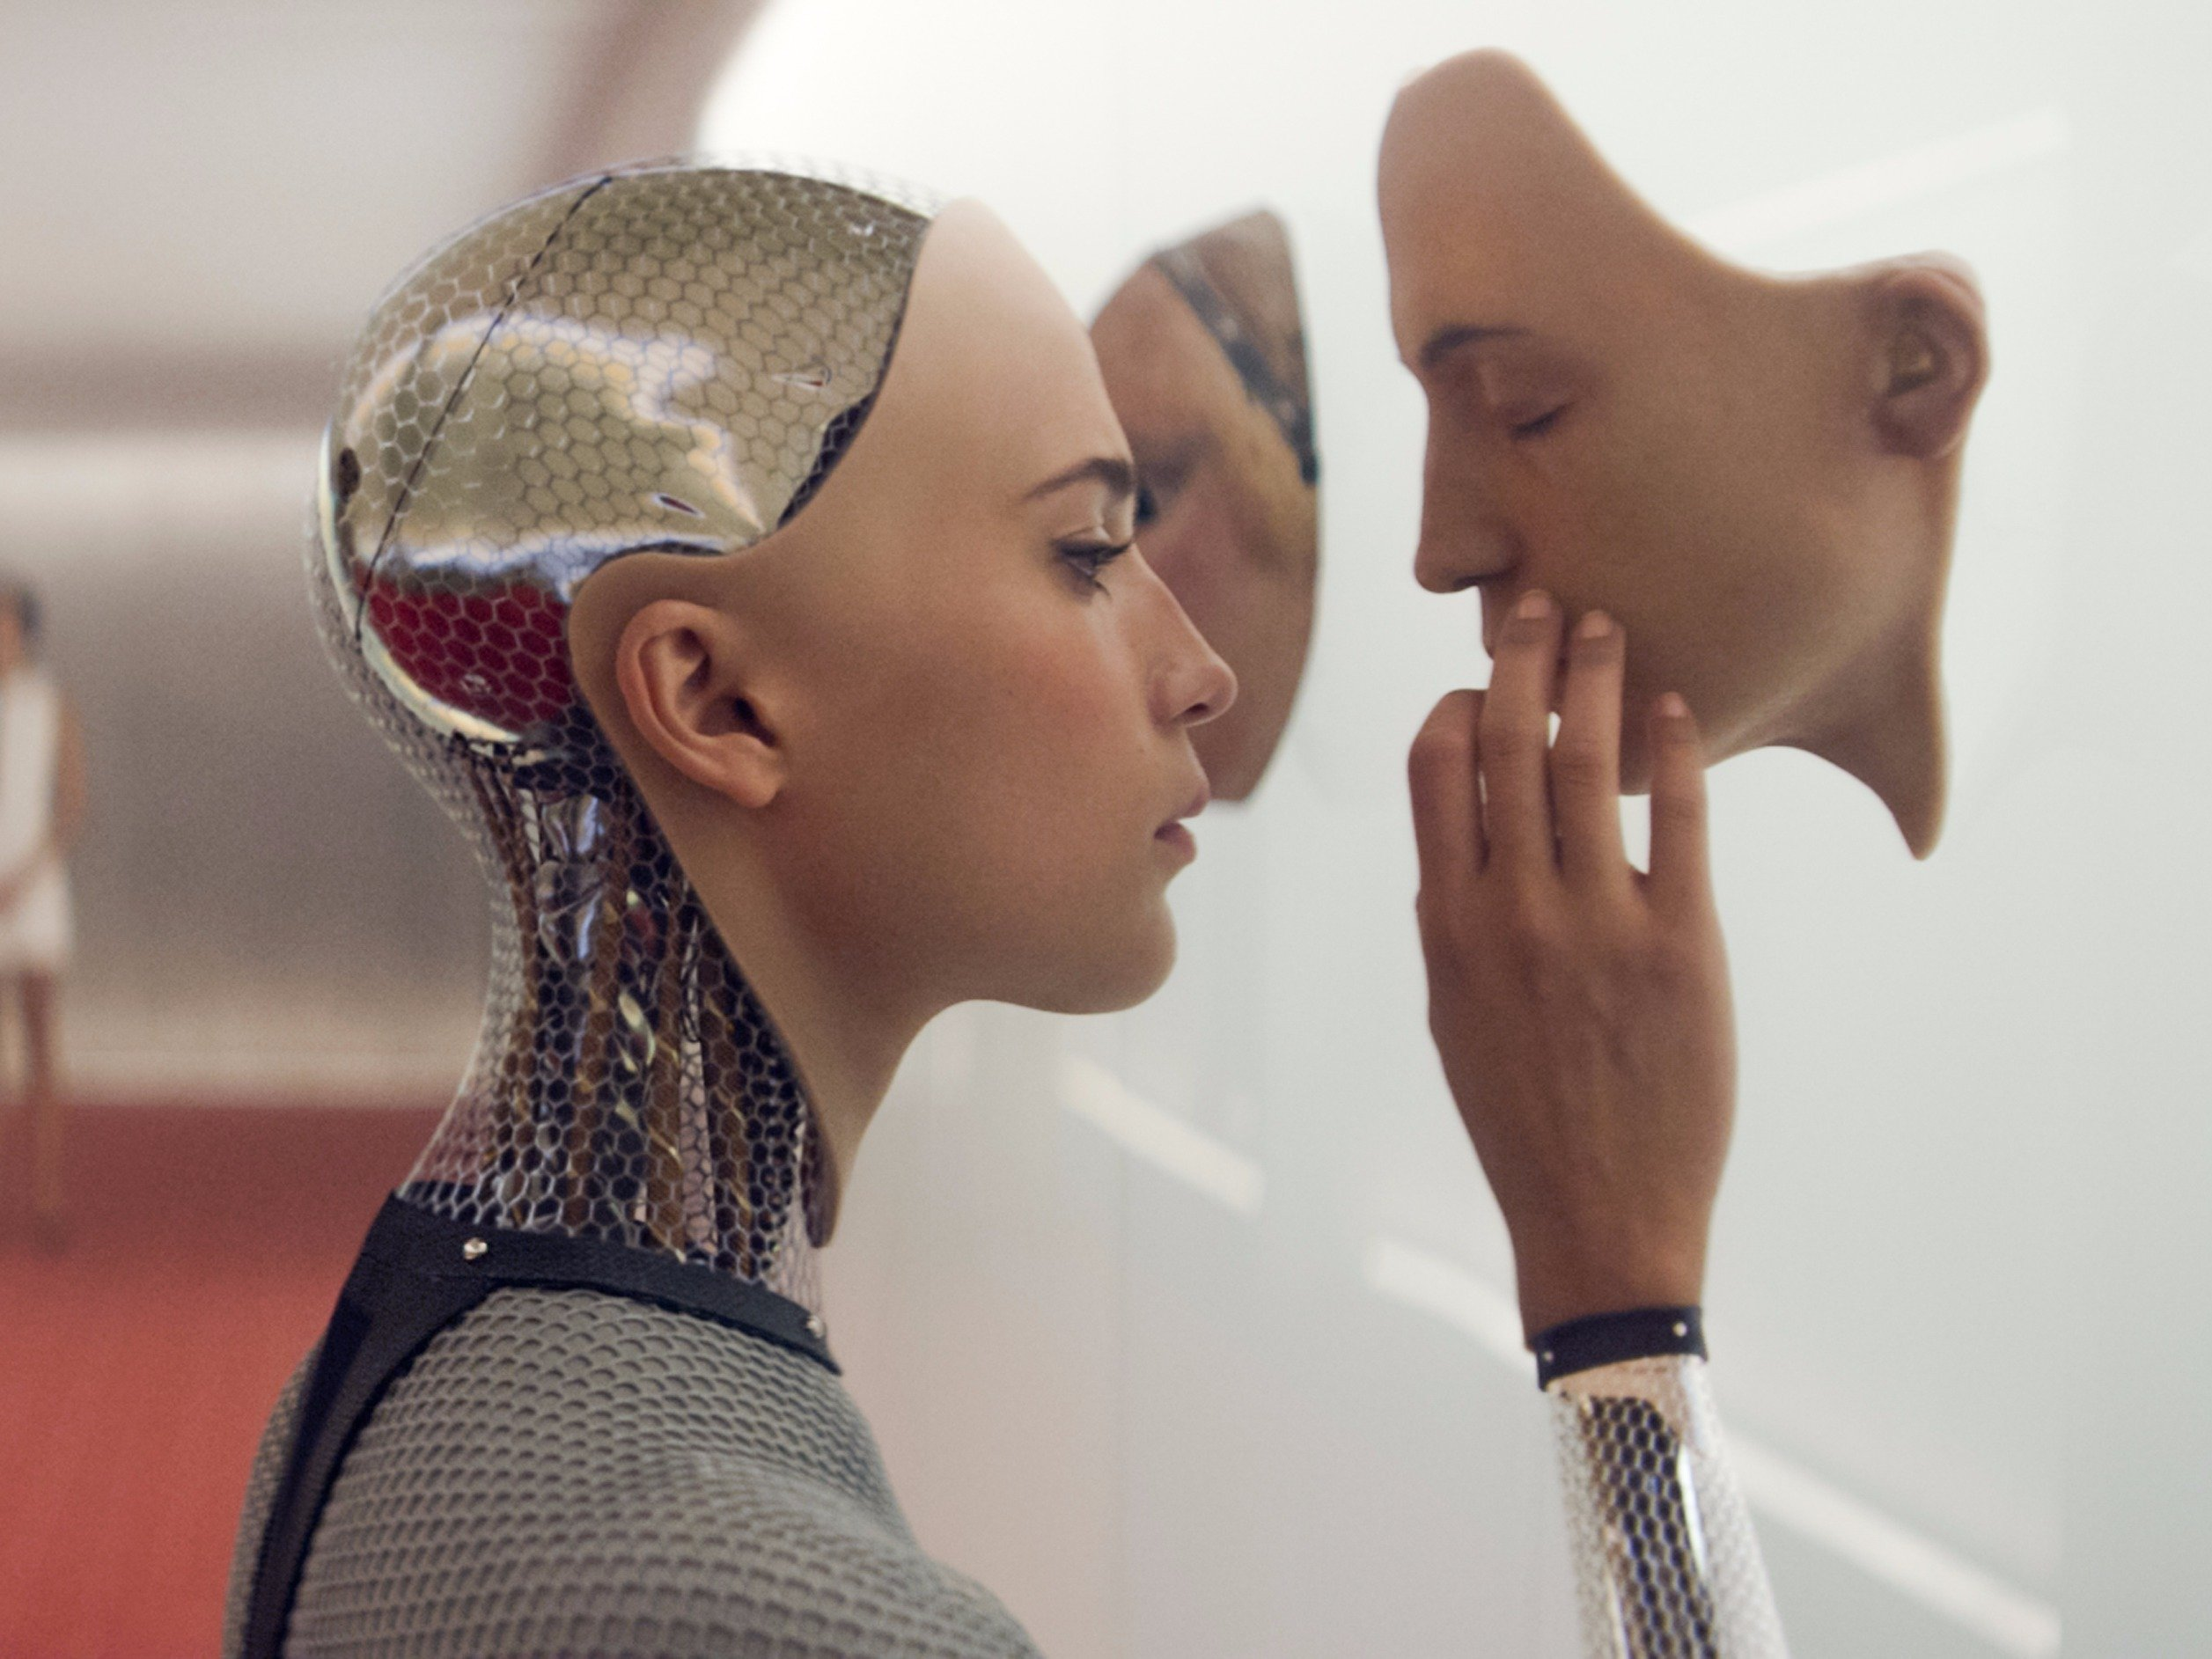 ex-machina-movie-artificial-intelligence-robot